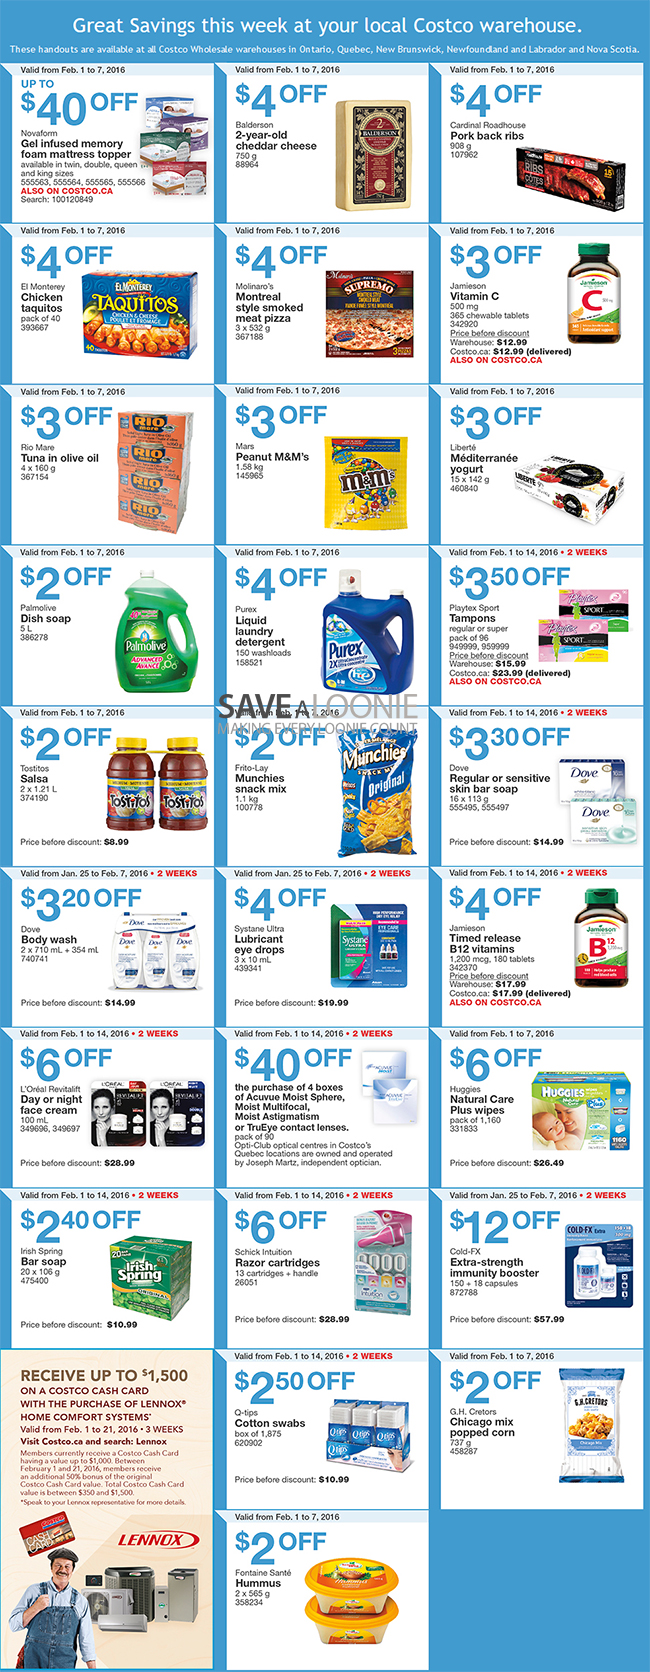 Costco warehouse coupons february 2019